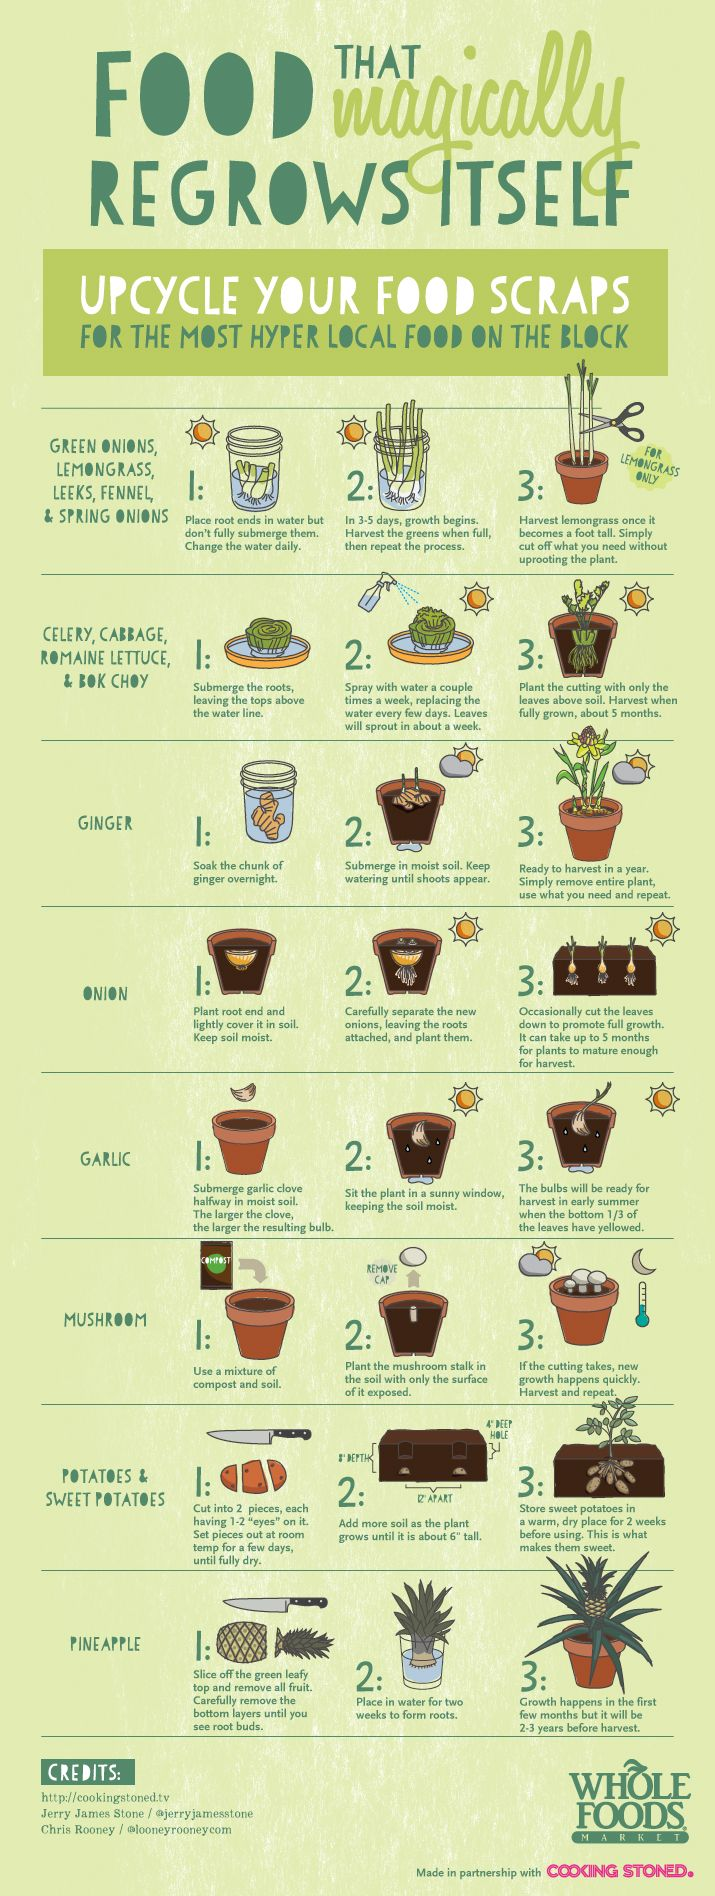 Food that regrows itsekf